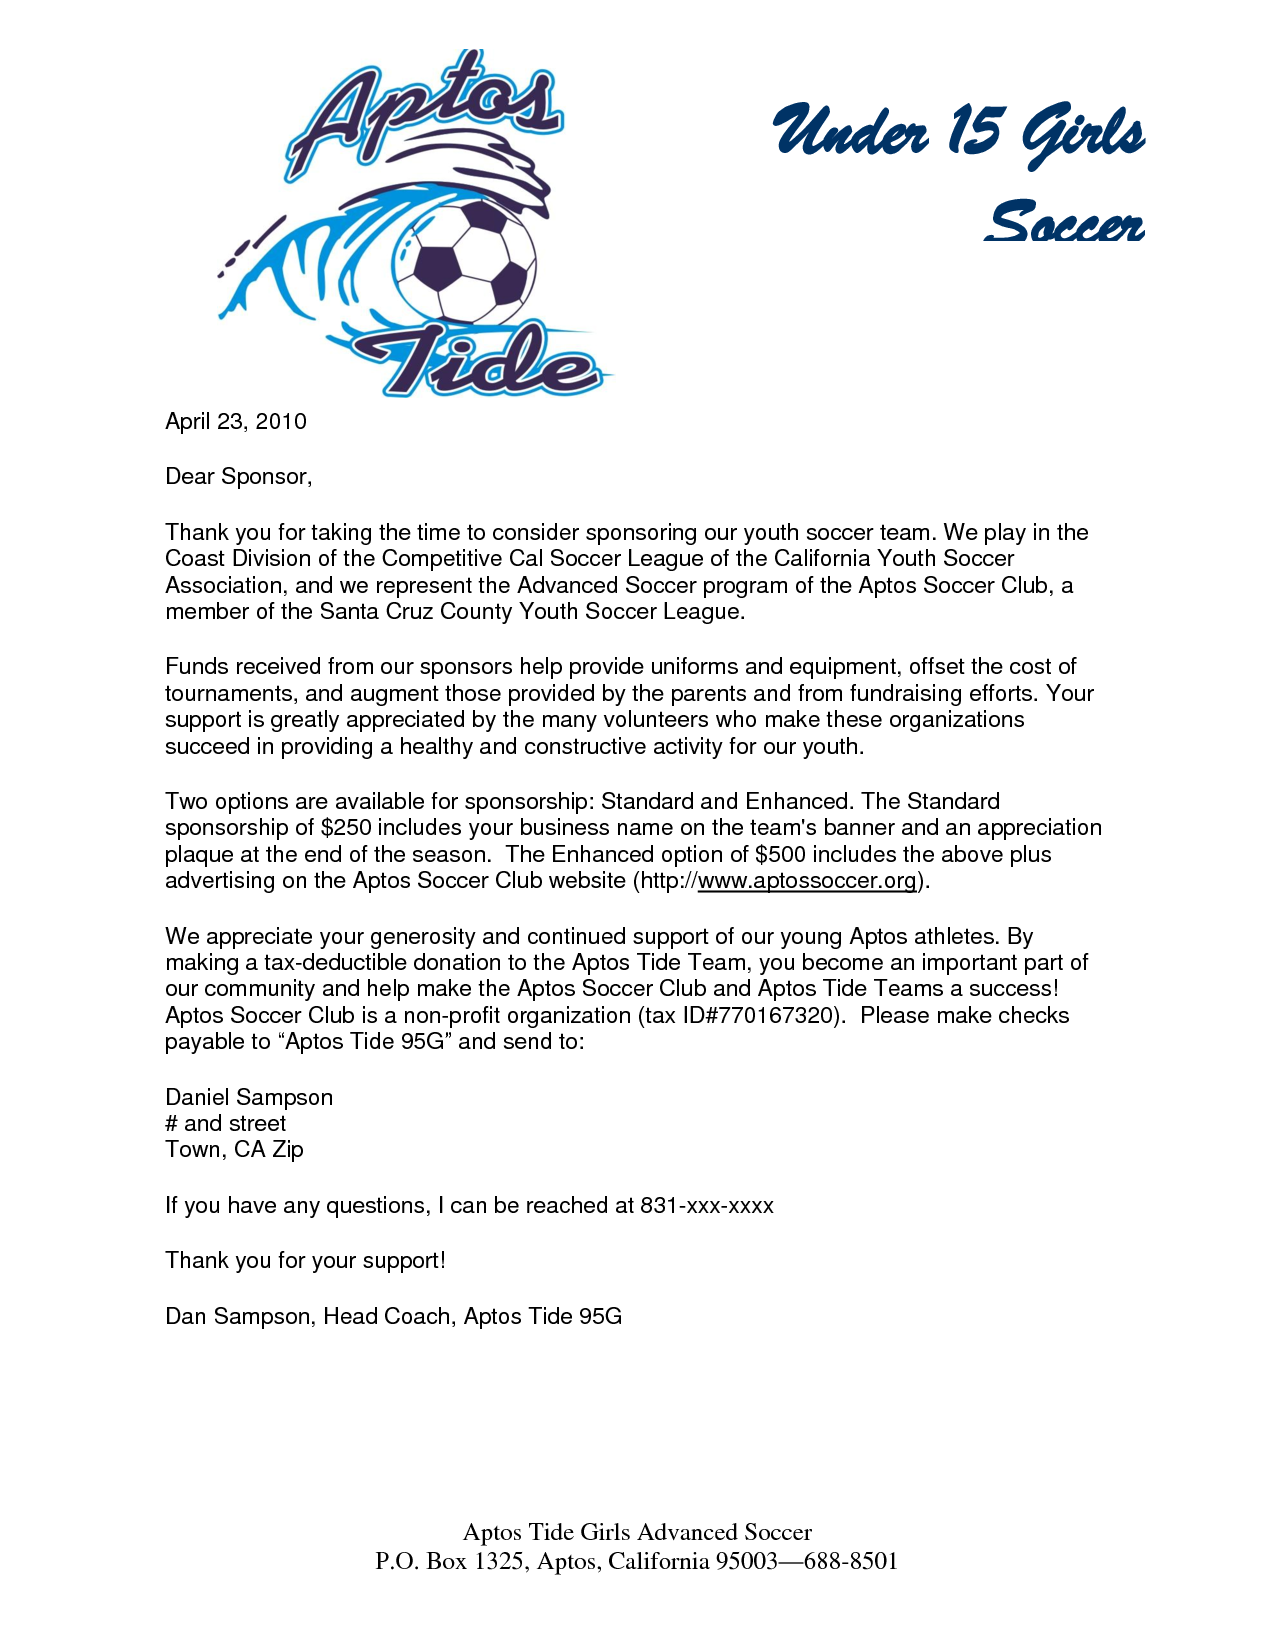 parent thank you letter from youth athletes | Sponsorship Letter ...